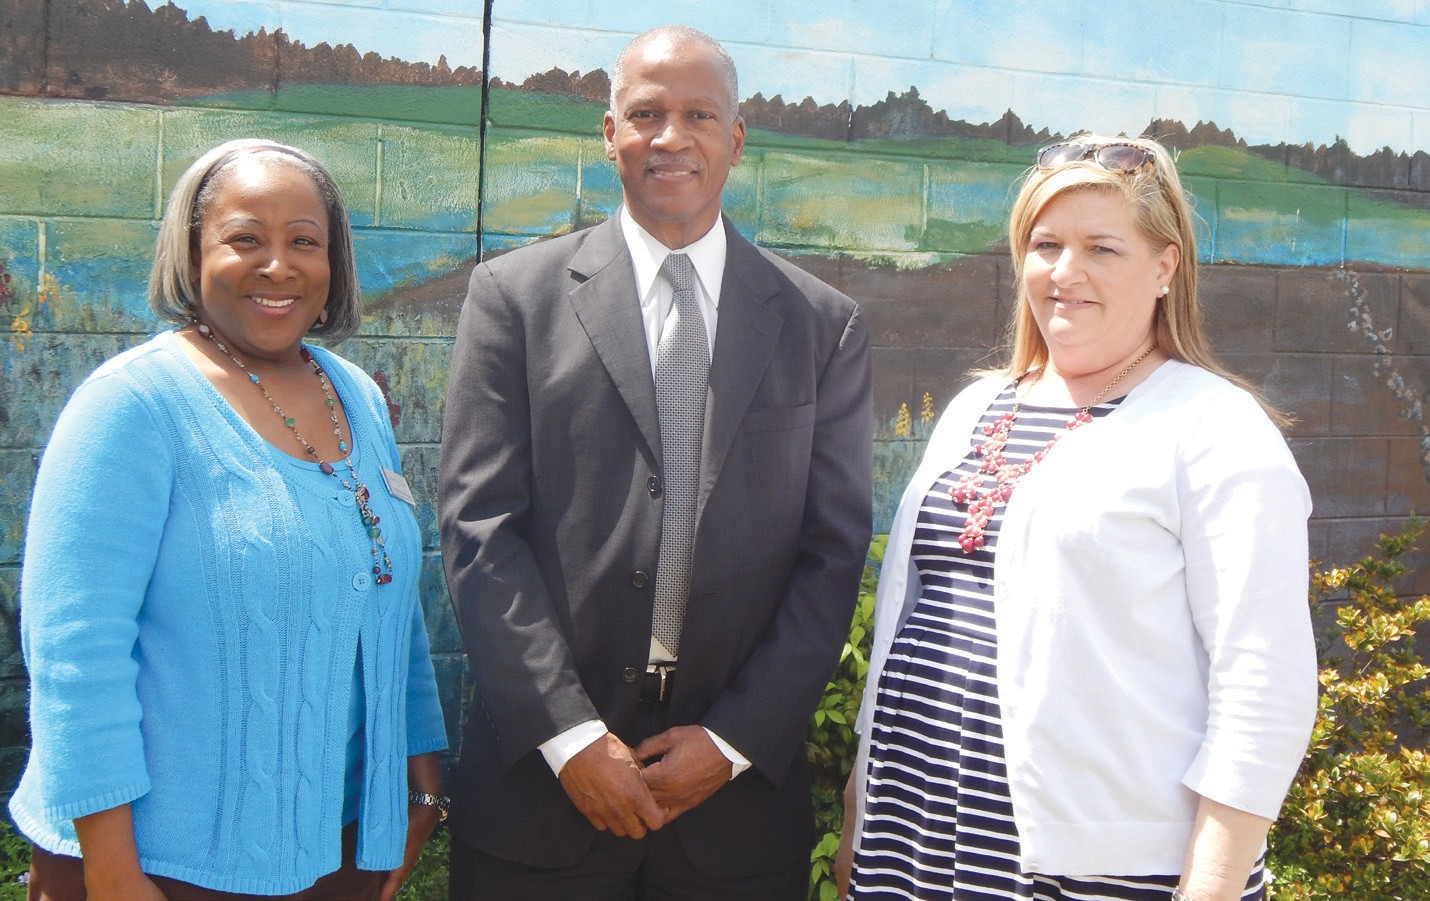 Union Mission new Executive Director Steve Allison (center) shown with Patricia Patterson, Employment Services (left) and Jeanette Ortiz-Andreou, Emergency Services Manager (right)